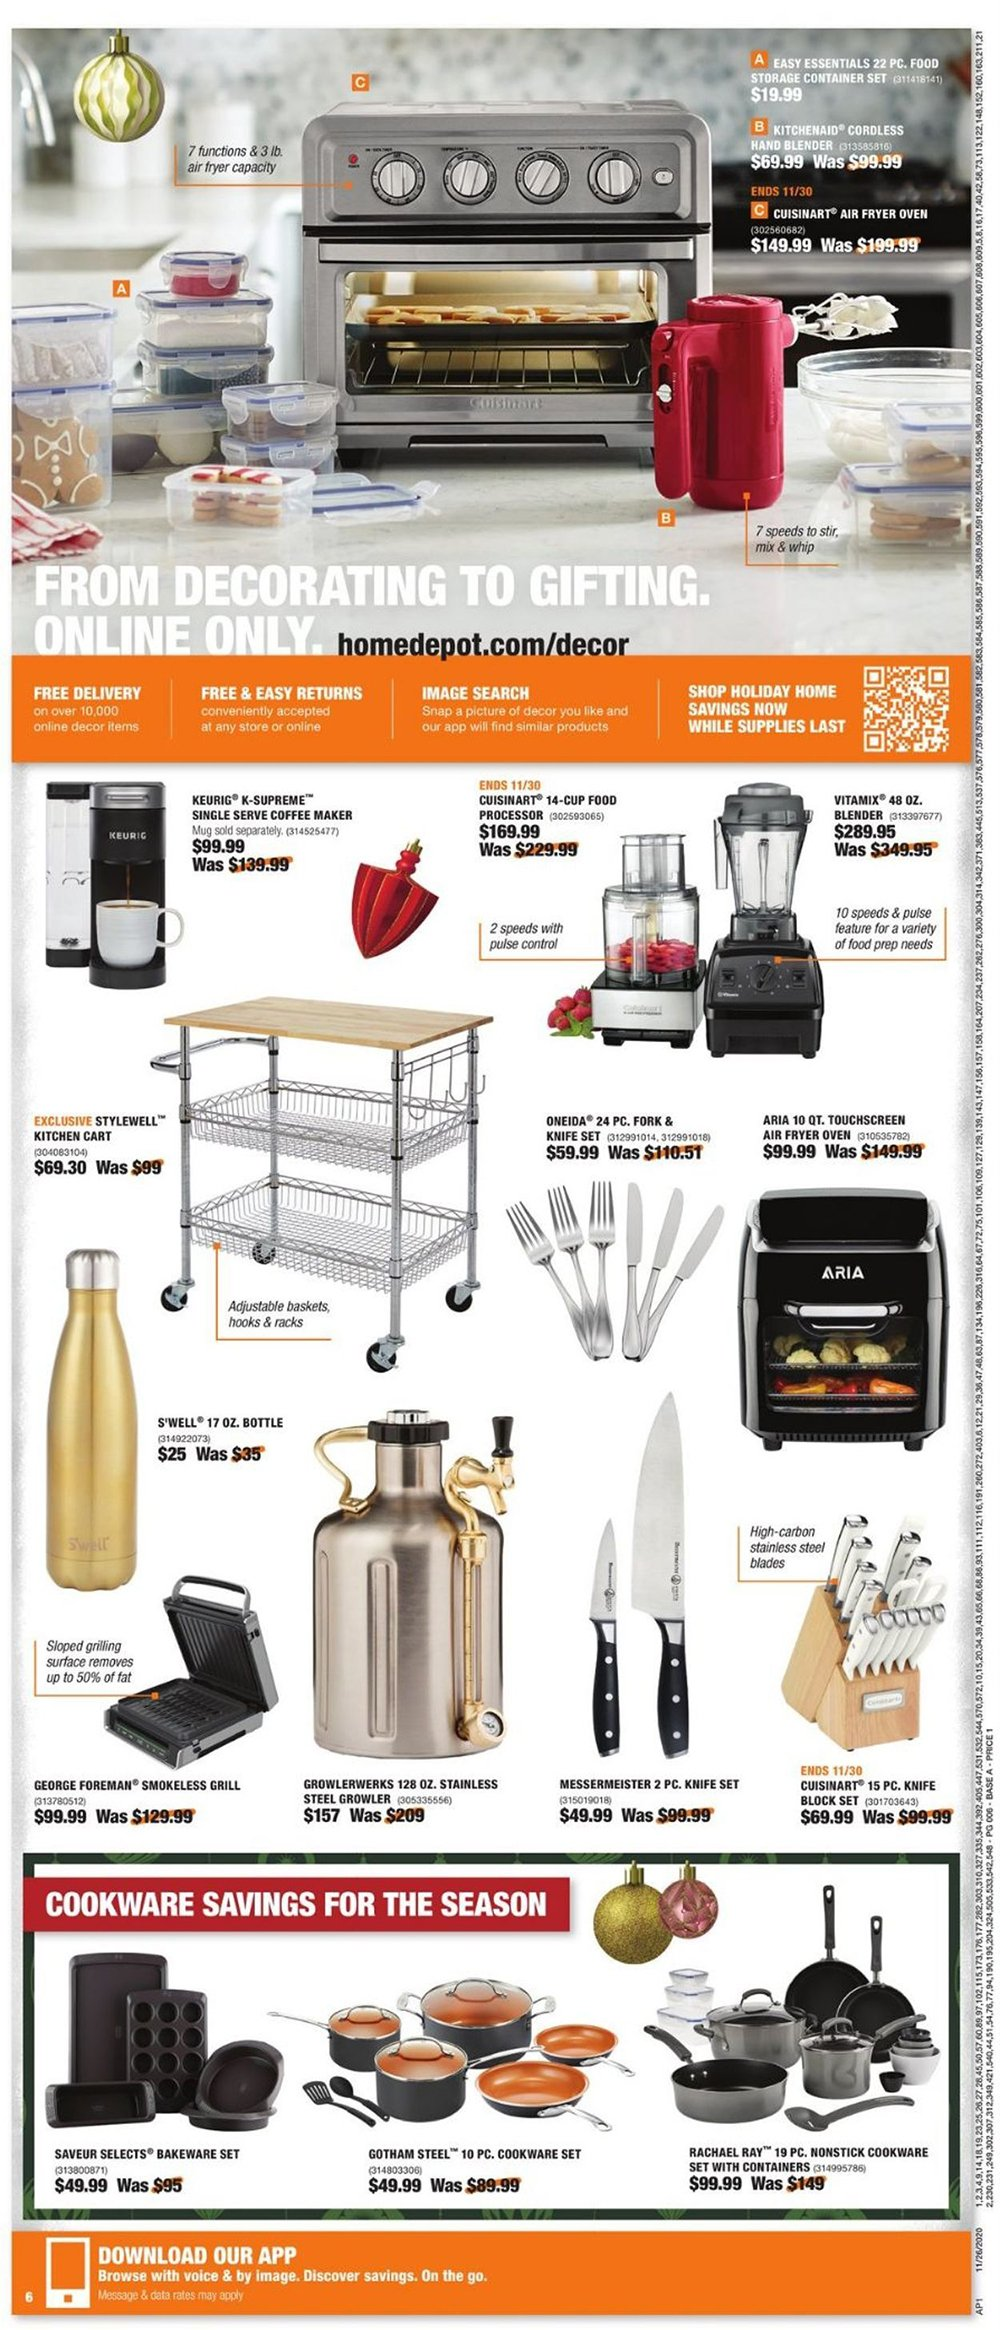 Home Depot Cyber Monday 2020 Page 8